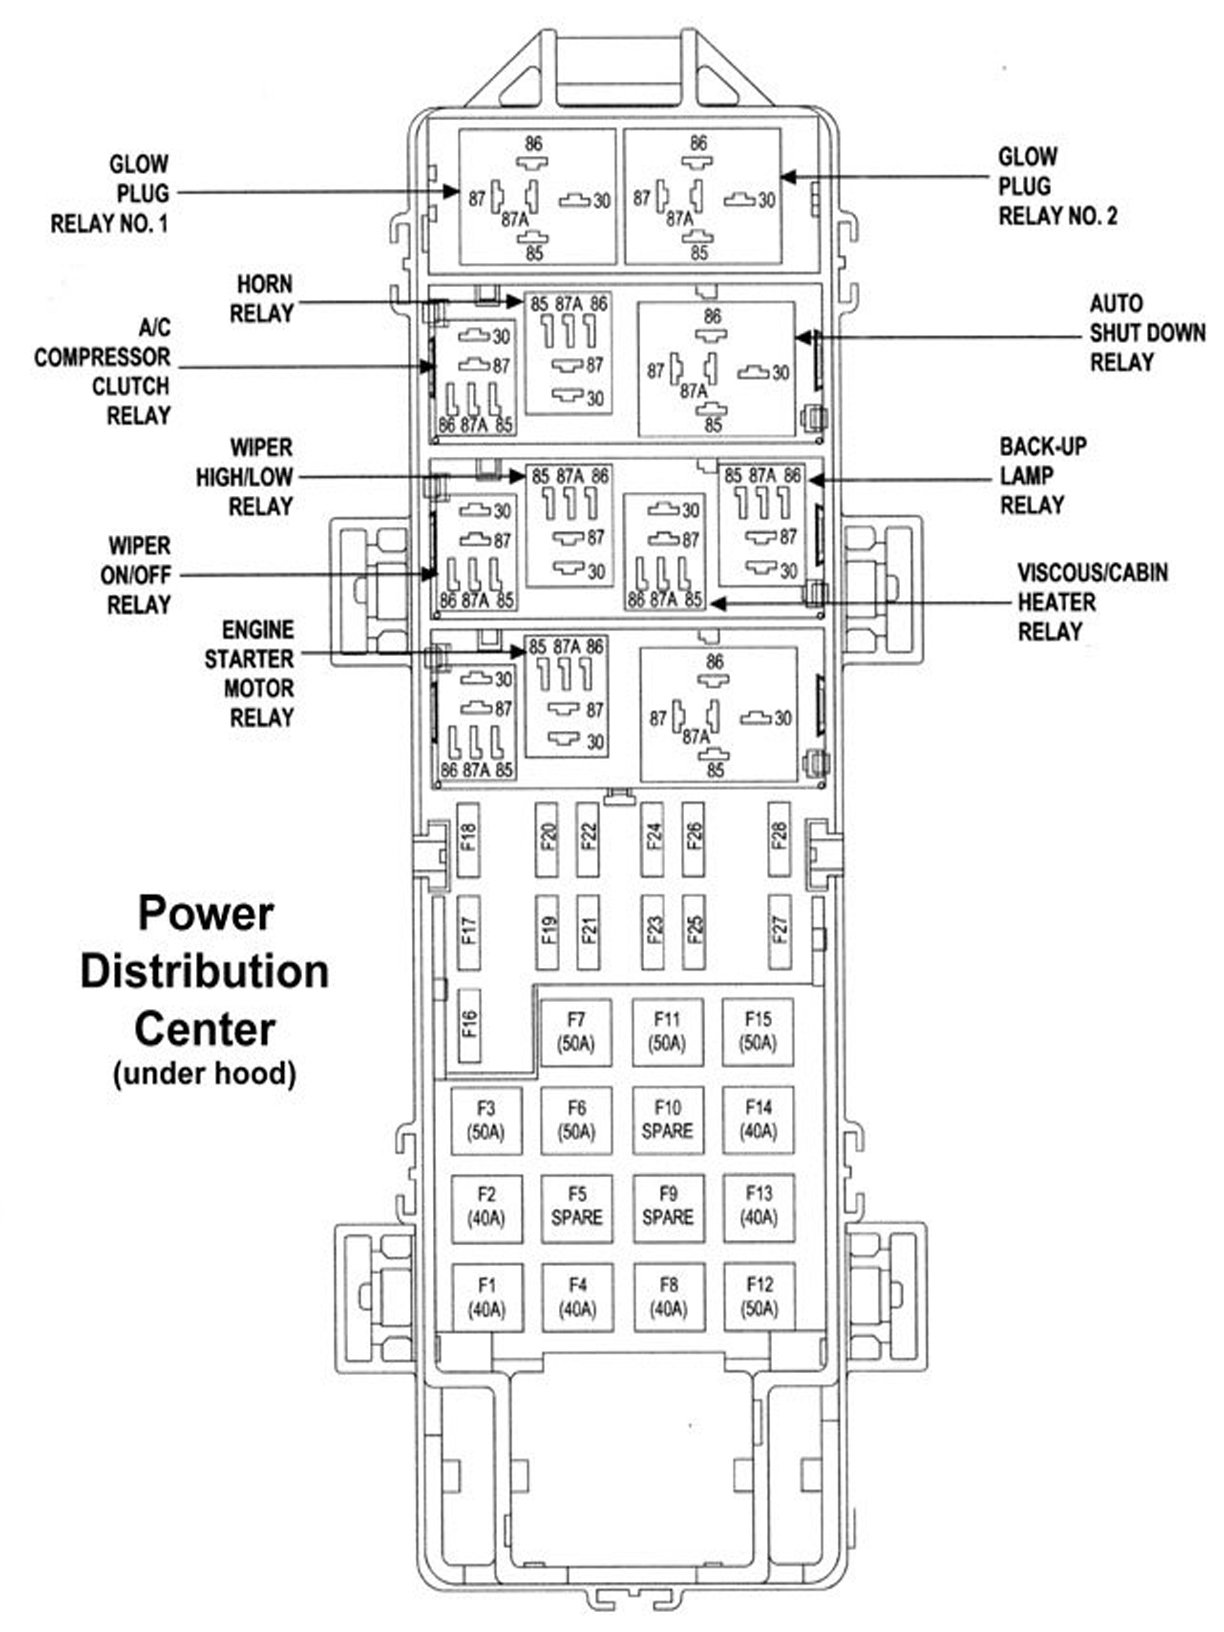 Jeep Grand Cherokee 1999 2004 Fuse Box Diagram 397760 on dodge rear wiper motor schematic